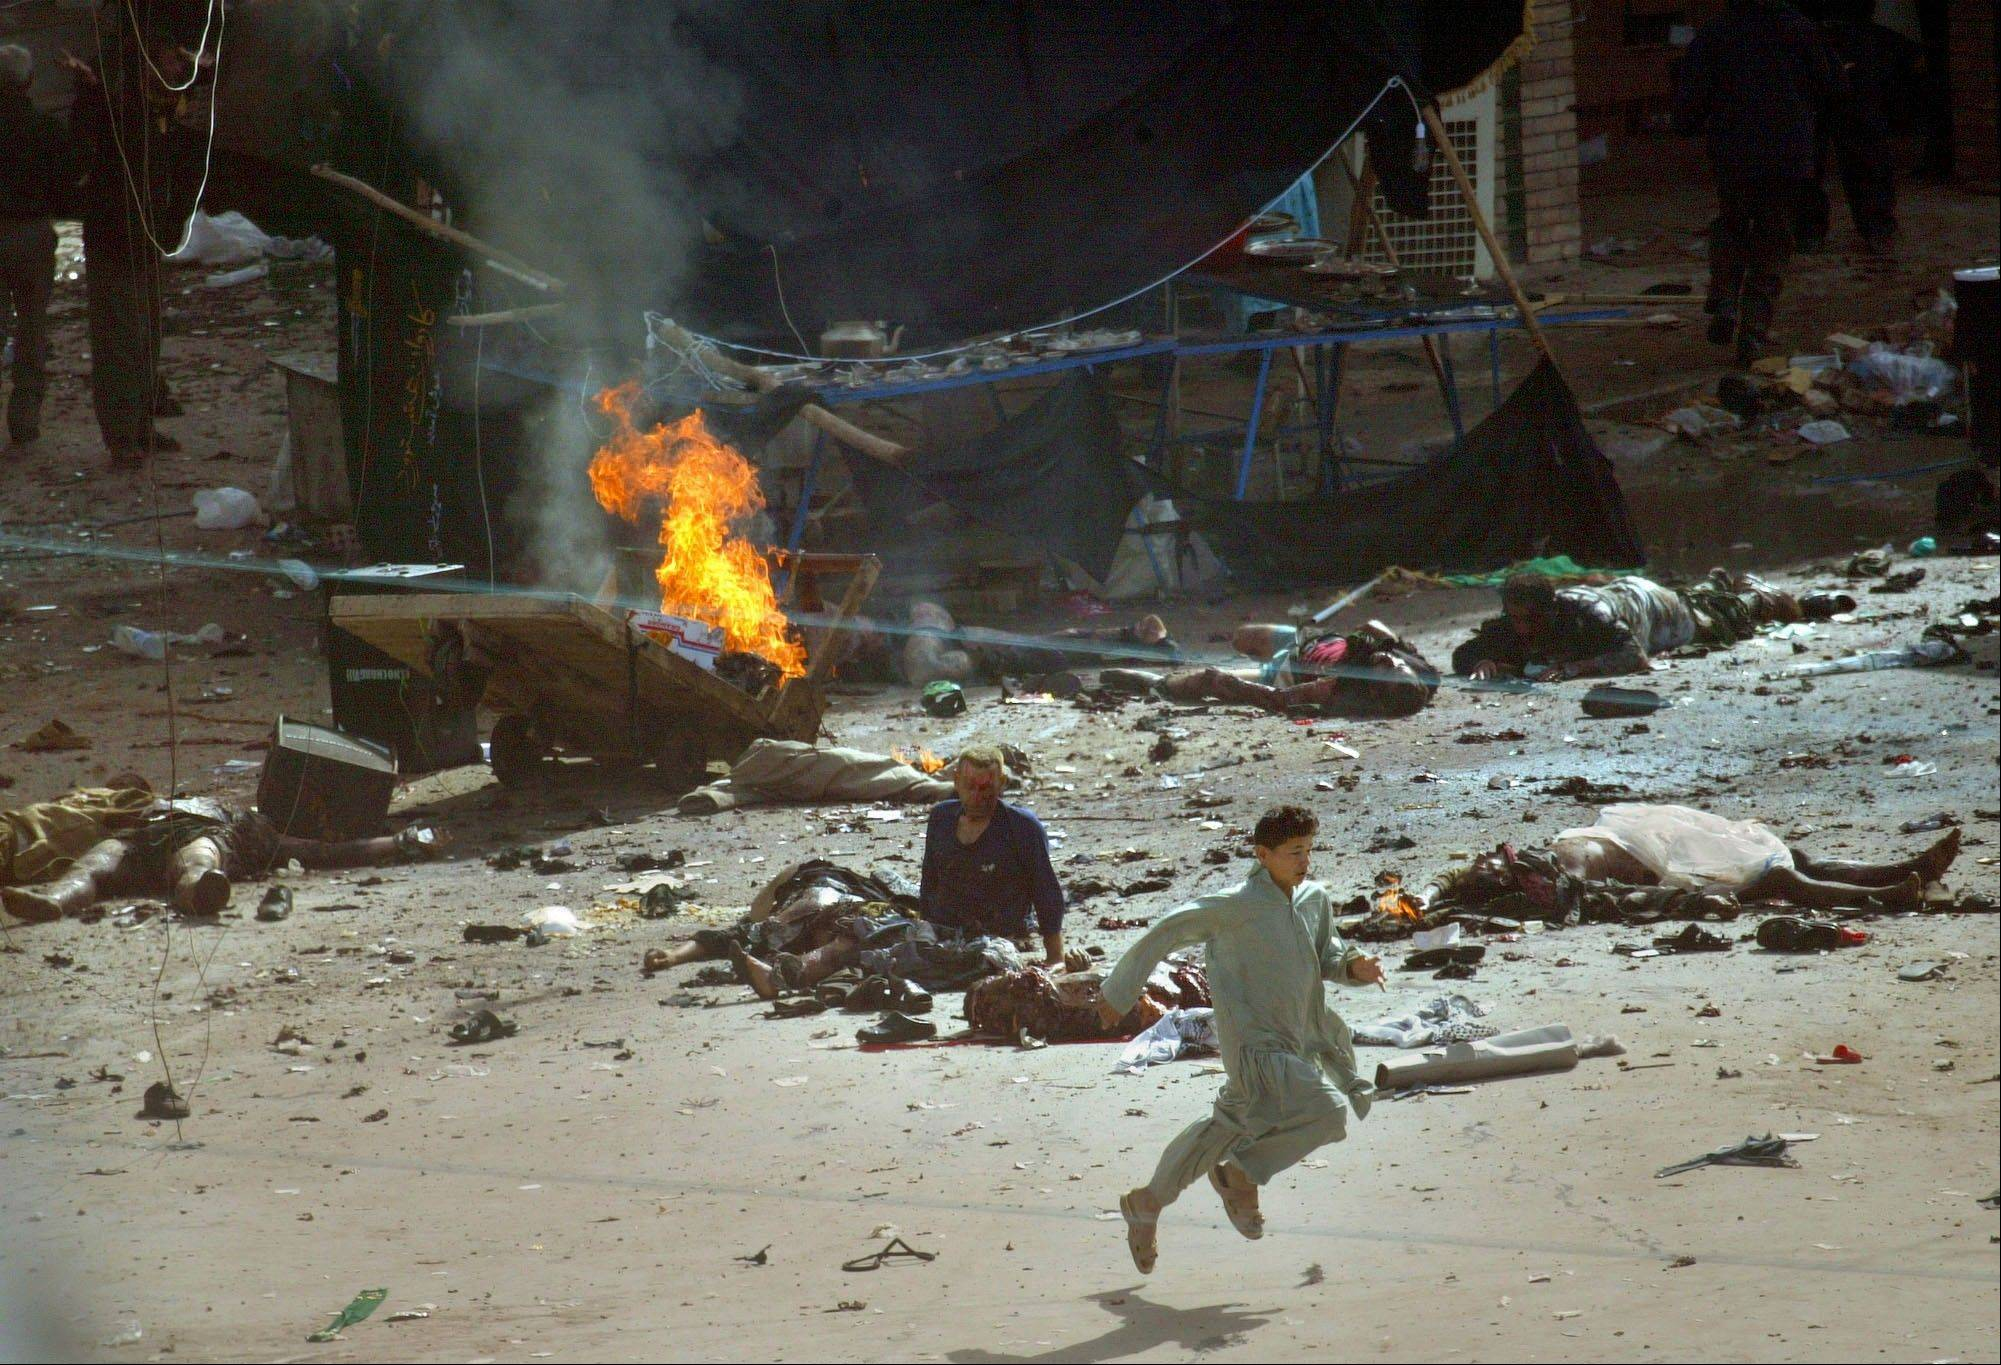 Moments after the explosions, a youth runs past the victims and burning debris at the site of several bomb blasts in densely-occupied areas during the holy day of Ashoura, a Shiite festival, in the holy city of Karbala, Iraq on Tuesday, March 2, 2004.